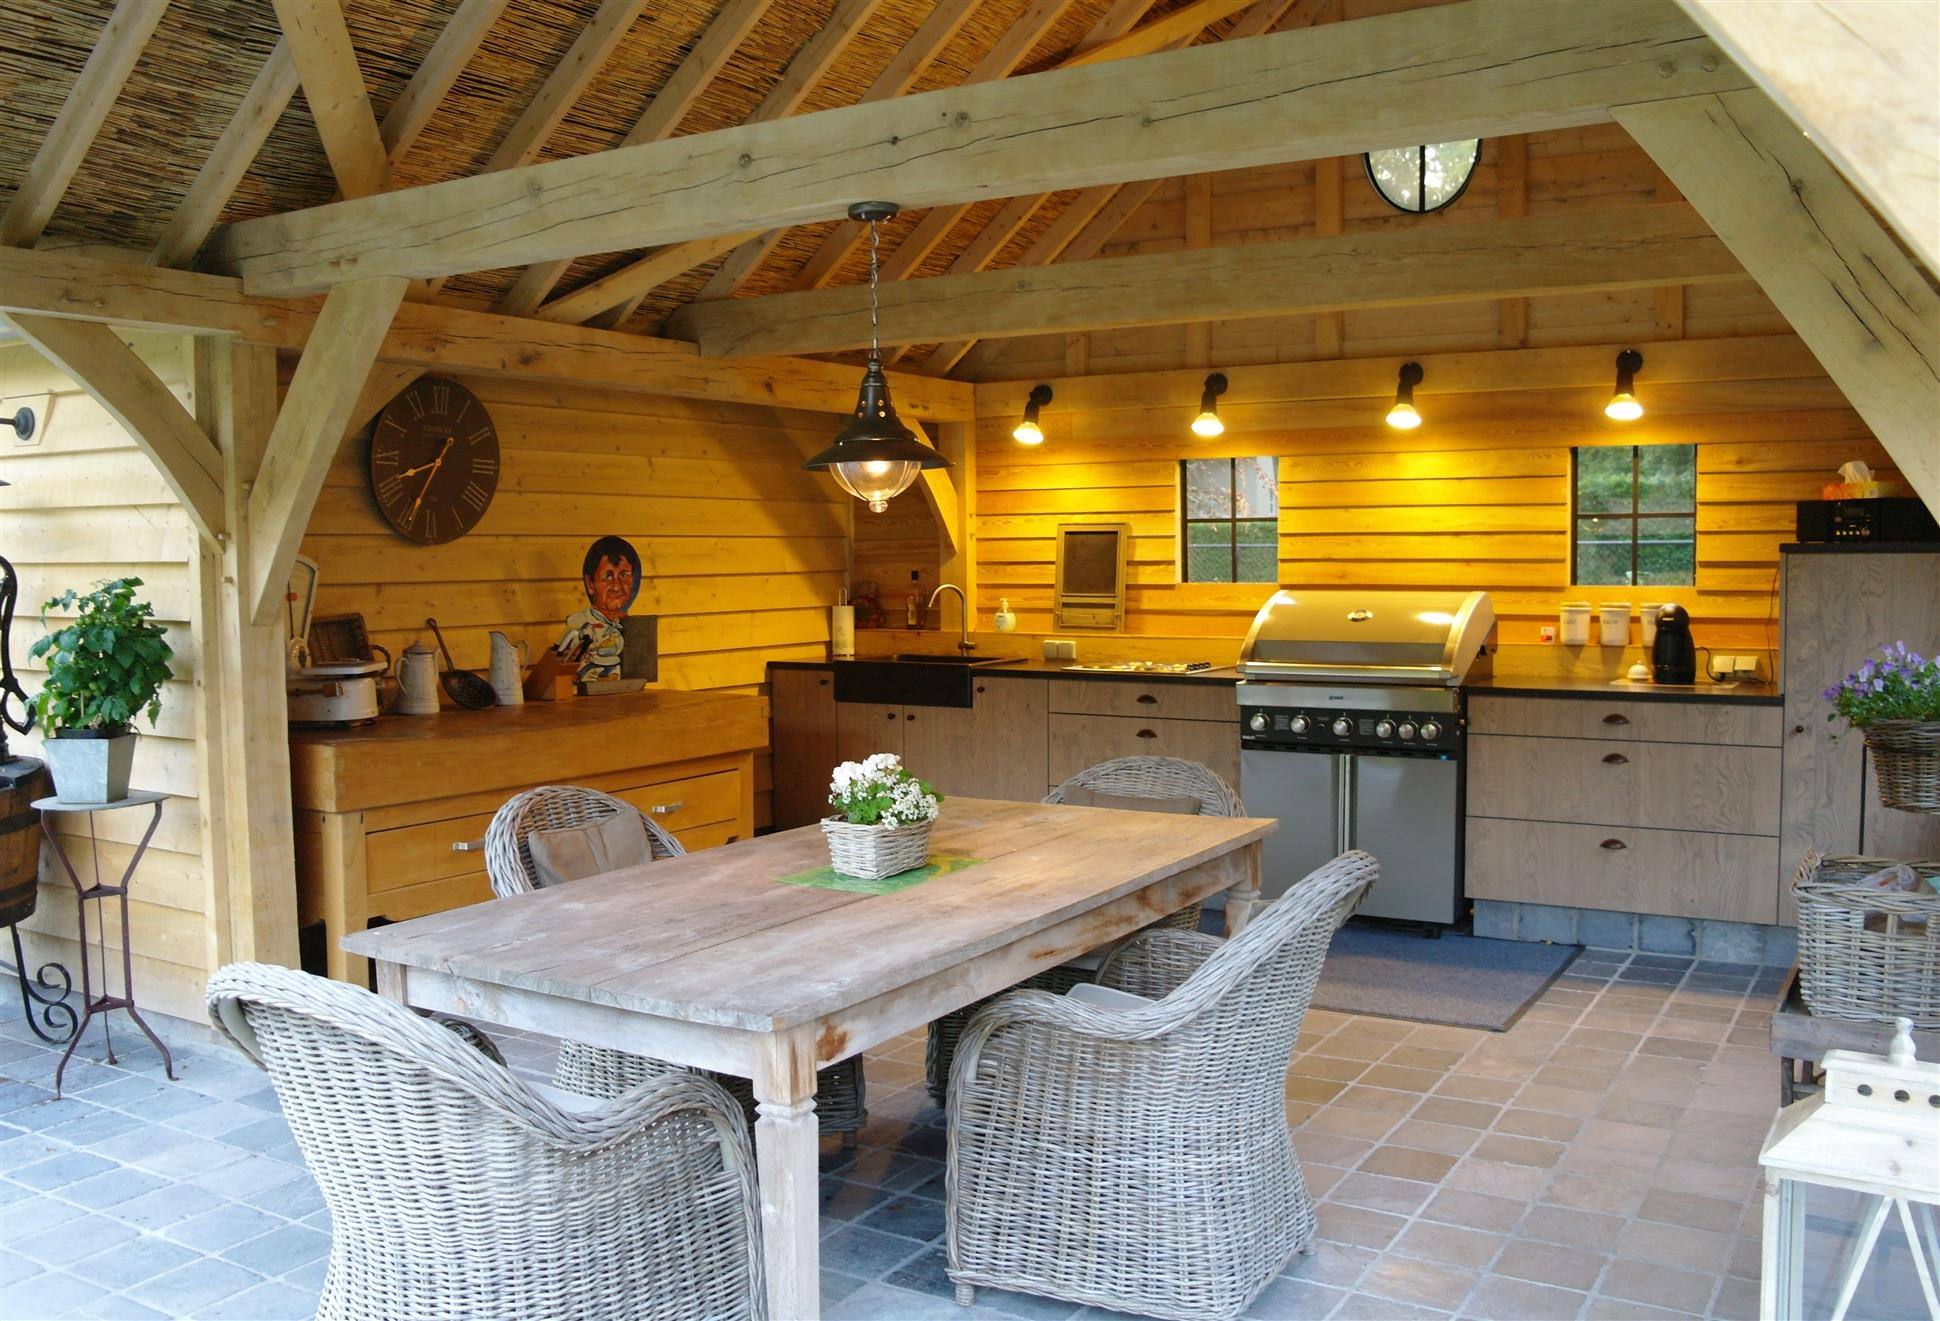 Outdoor Kitchen Design Ideas Uk ~ Outdoor kitchens designs uk on a budget